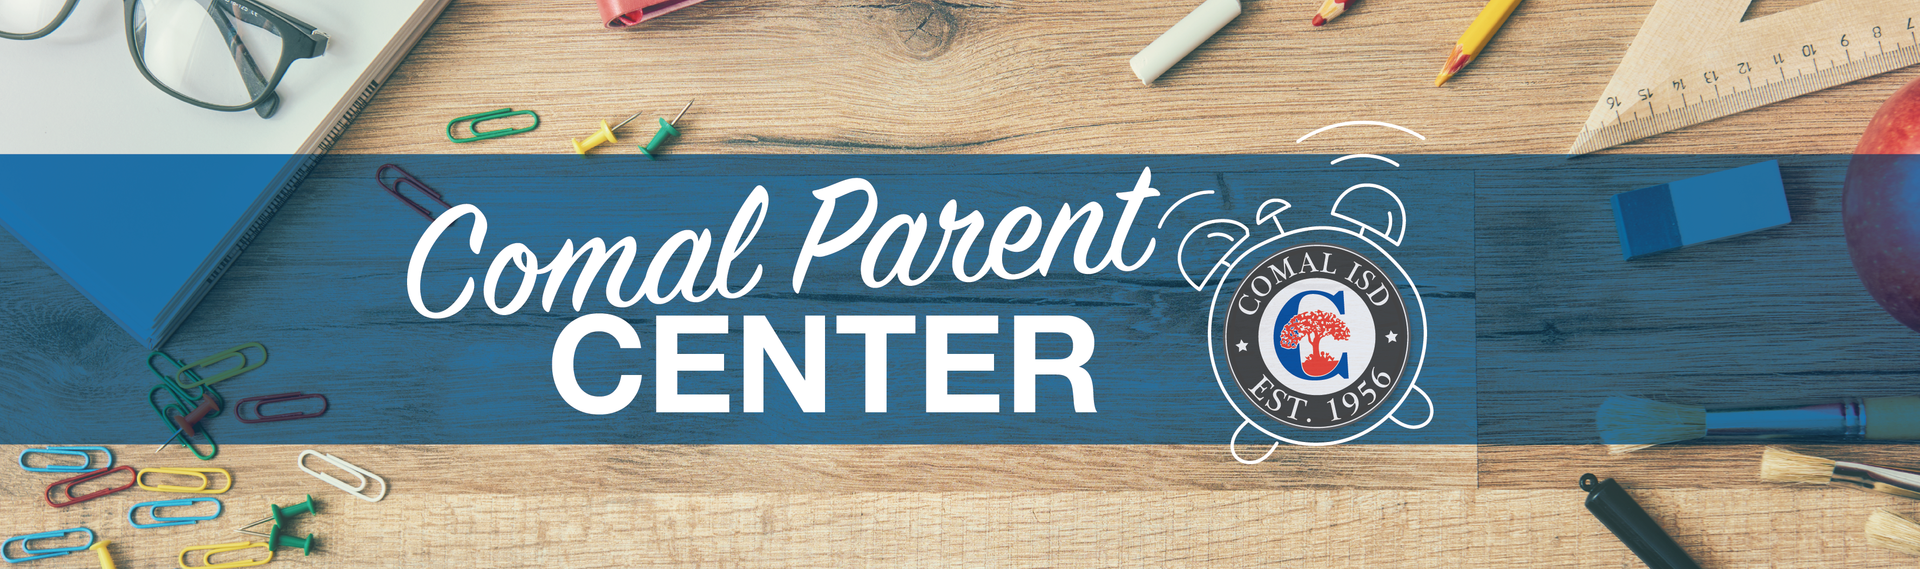 Comal Parent Center Banner